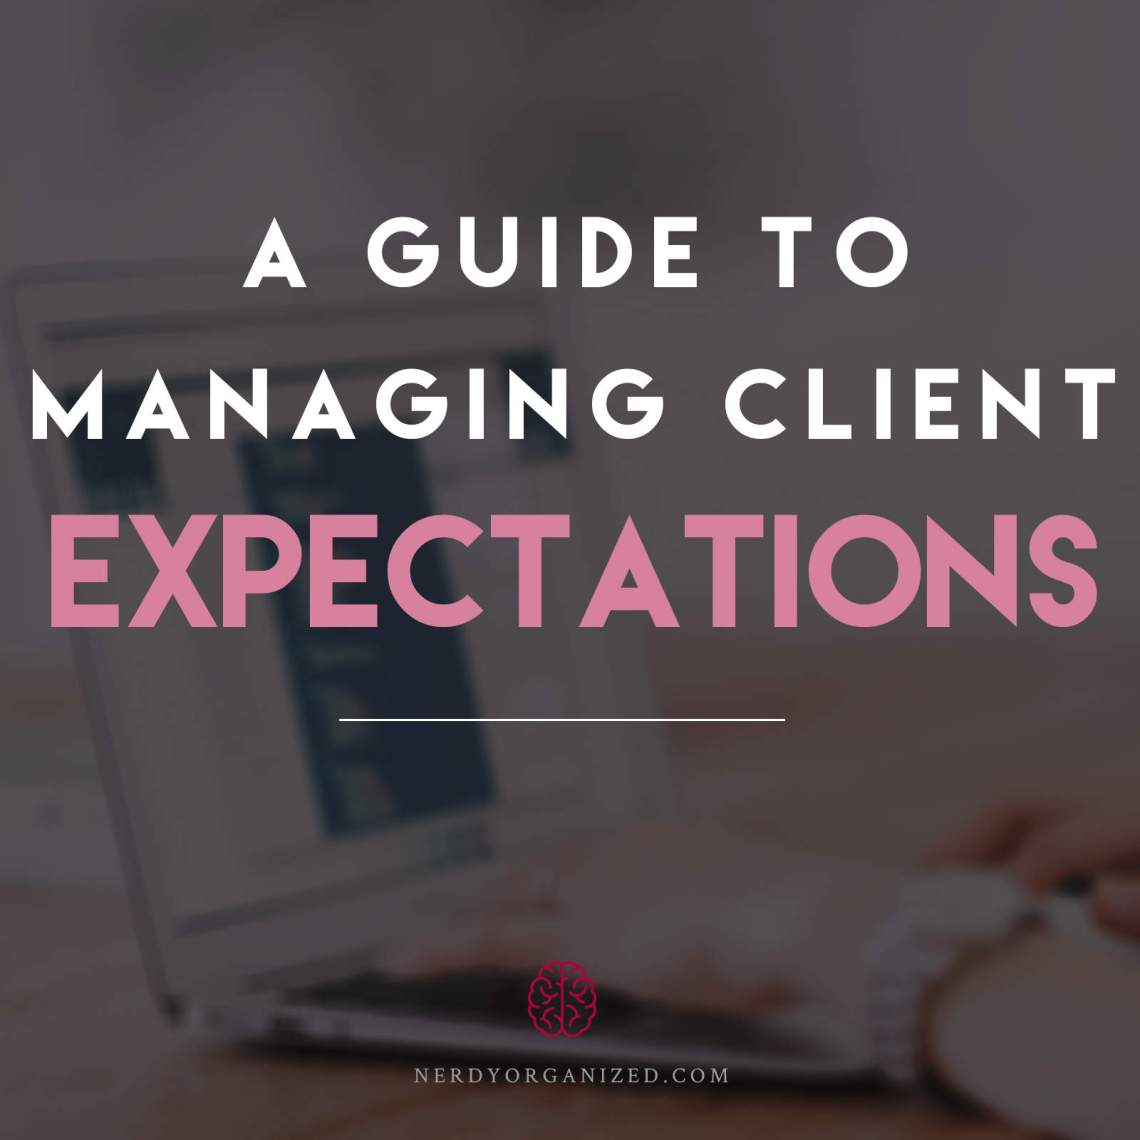 A Guide to Managing Client Expectations